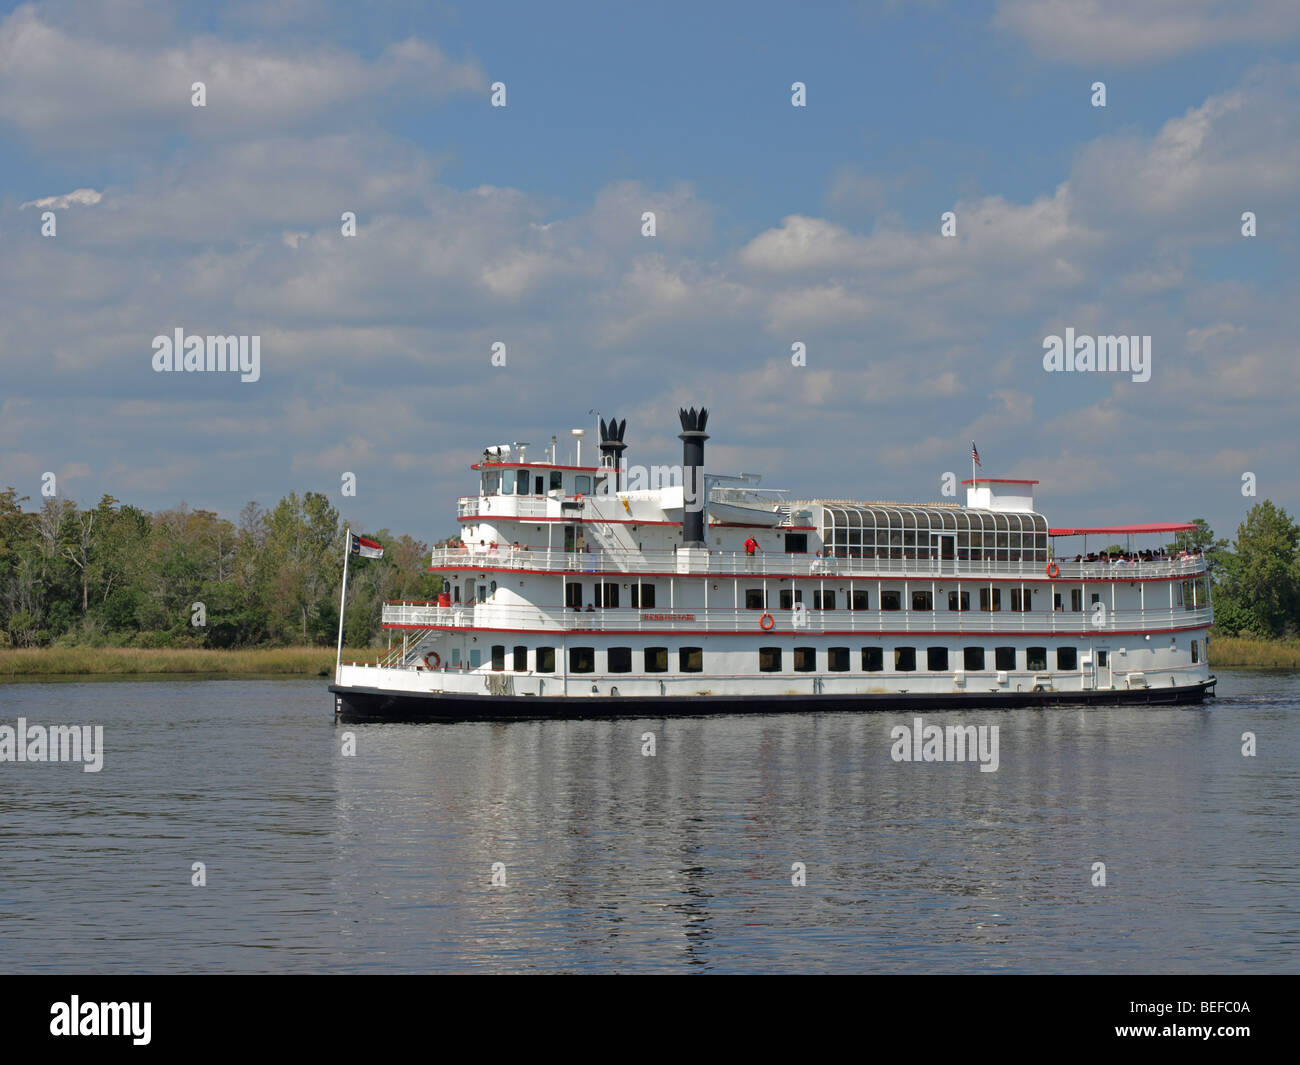 replica paddle-wheel riverboat boat on river with cloudy sky behind, large three deck white ship with smokestacks Stock Photo